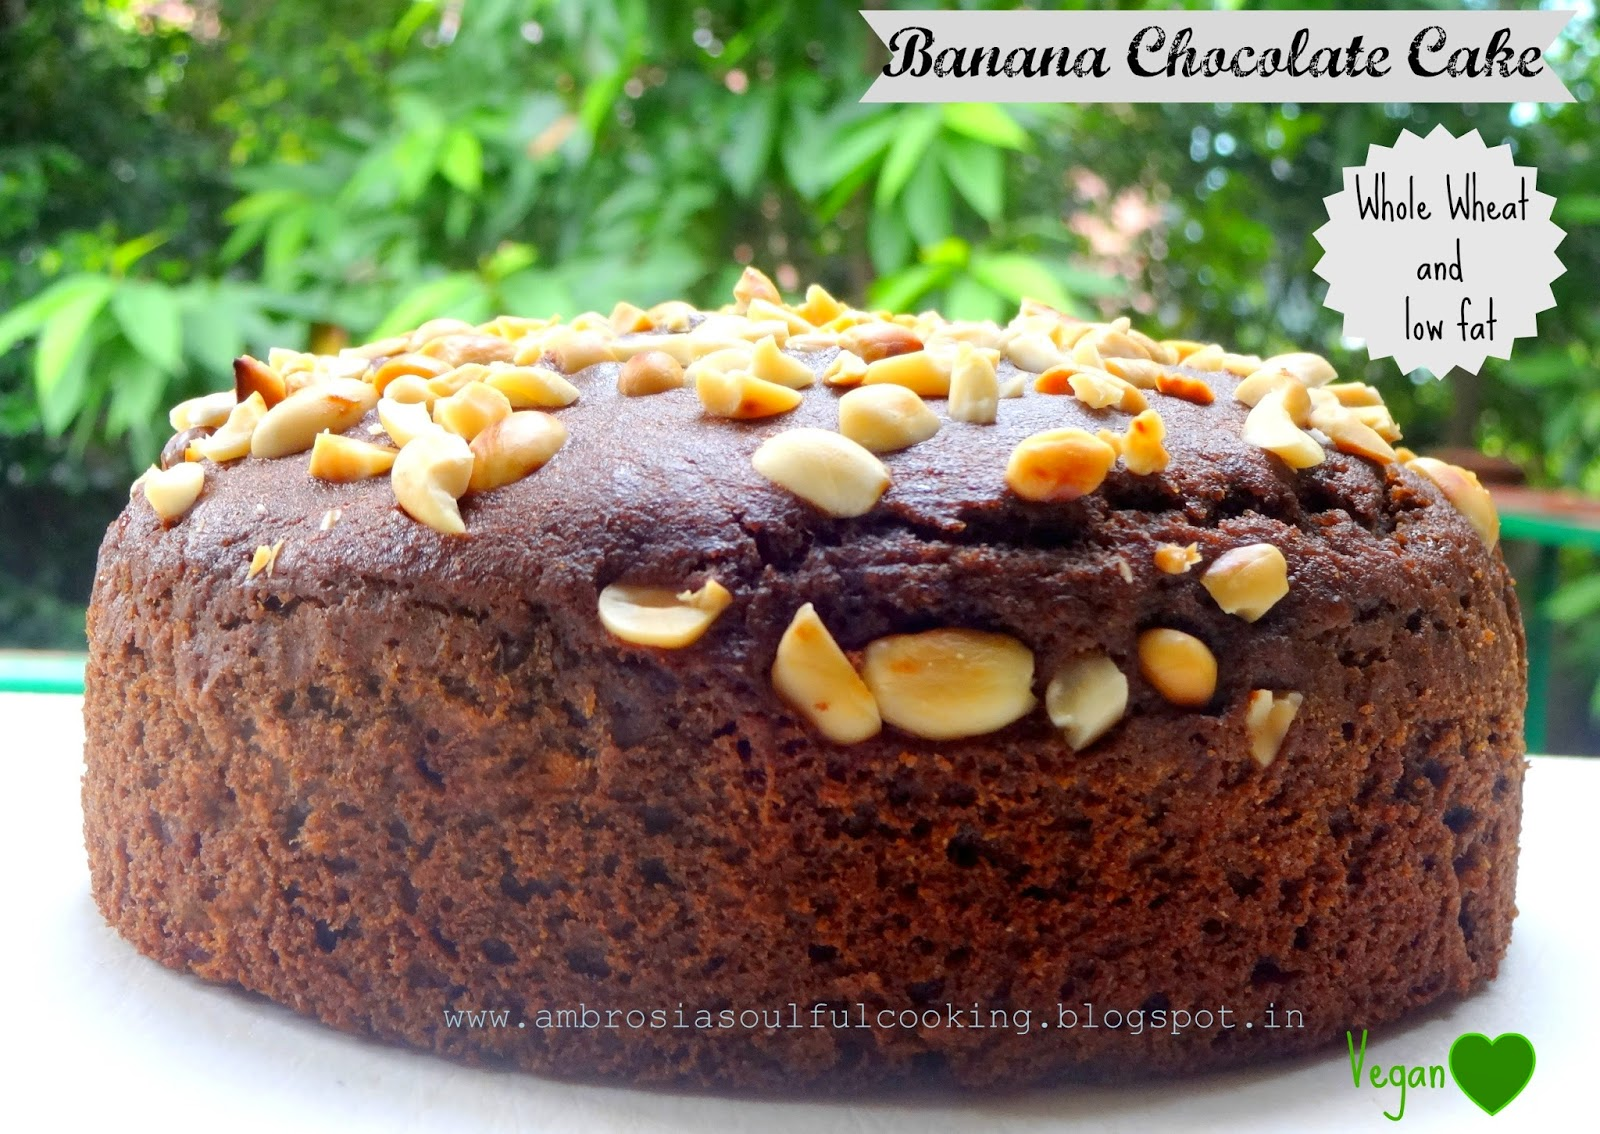 AMBROSIA: Whole Wheat Vegan Banana Chocolate Cake with Roasted Peanuts ...